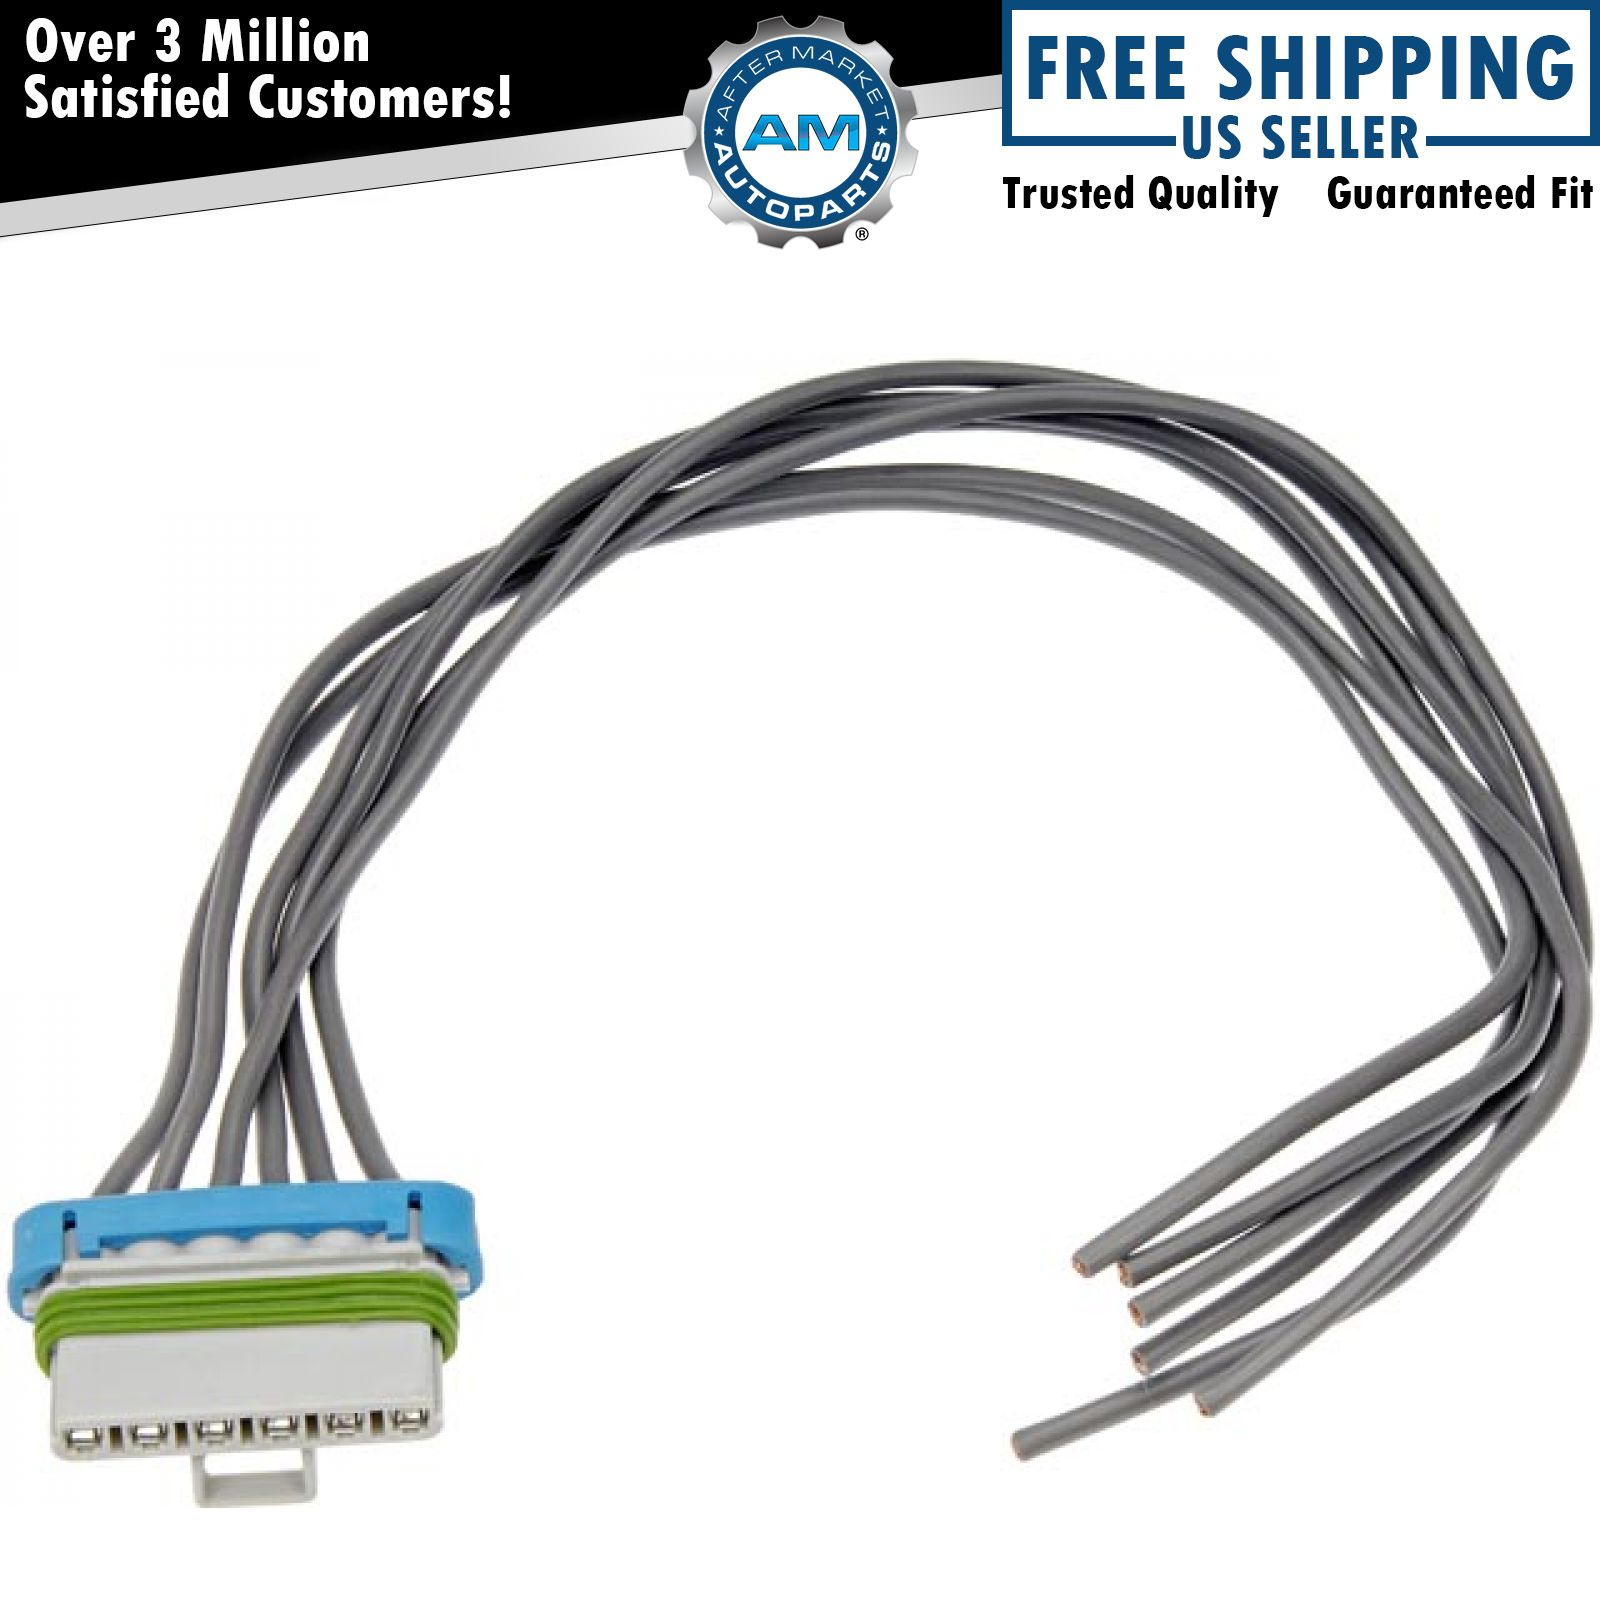 AM 1115928234 dorman 645 542 blower resistor wiring harness plug pigtail for dorman wiring harness at bayanpartner.co